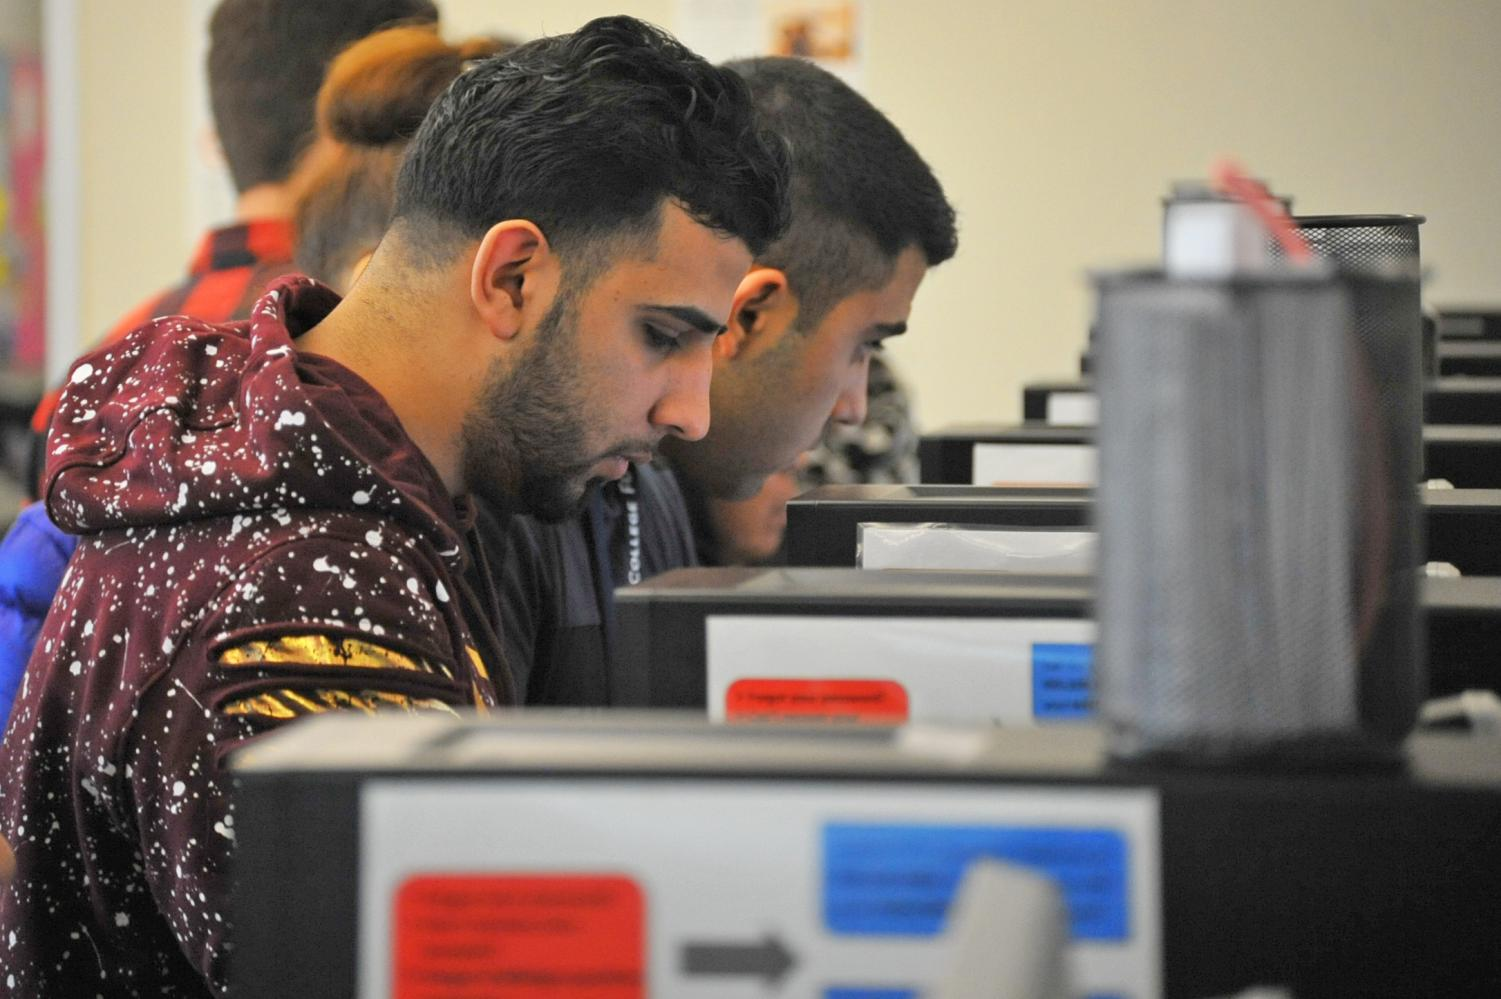 Richmond  resident Muhamed Alomari (front left) helps type his sisters' information on the online enrollment application on Jan. 22 in the Welcome Center in the Student Service Building. Over 2,000 Full Time Equivalent Students have enrolled in the 2018 spring semester according to the enrollment report of 2018.